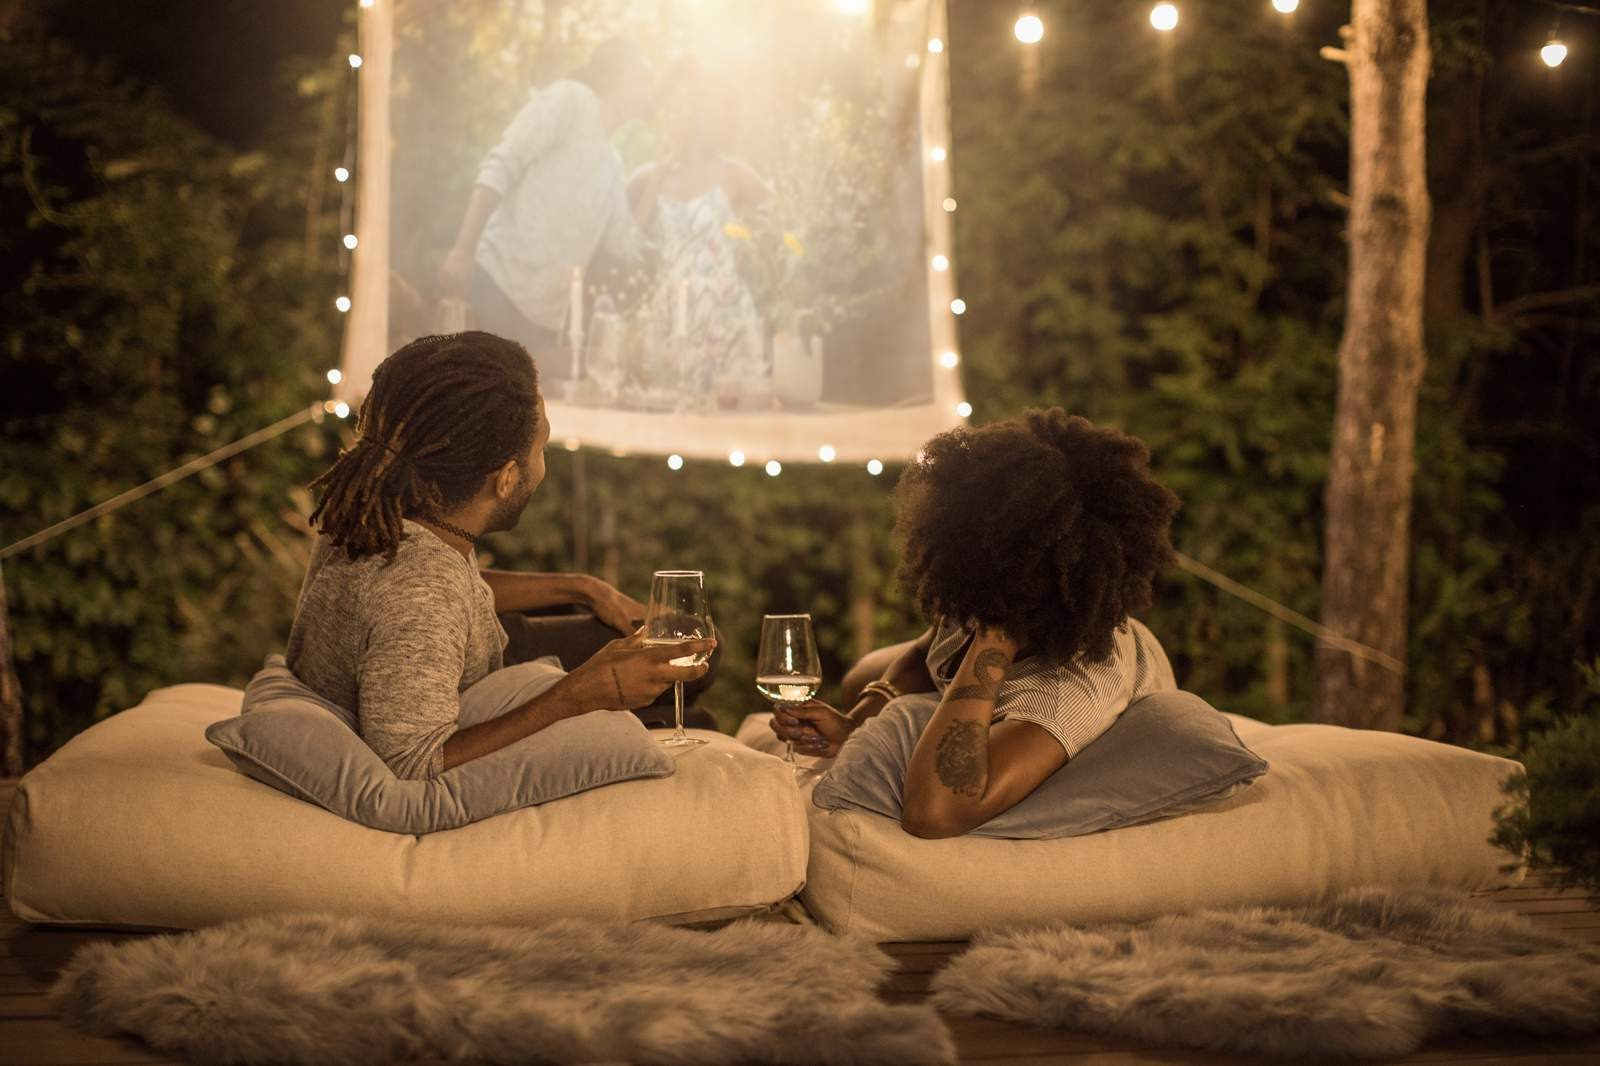 A couple on a date drinking wine and watching a movie outdoors.